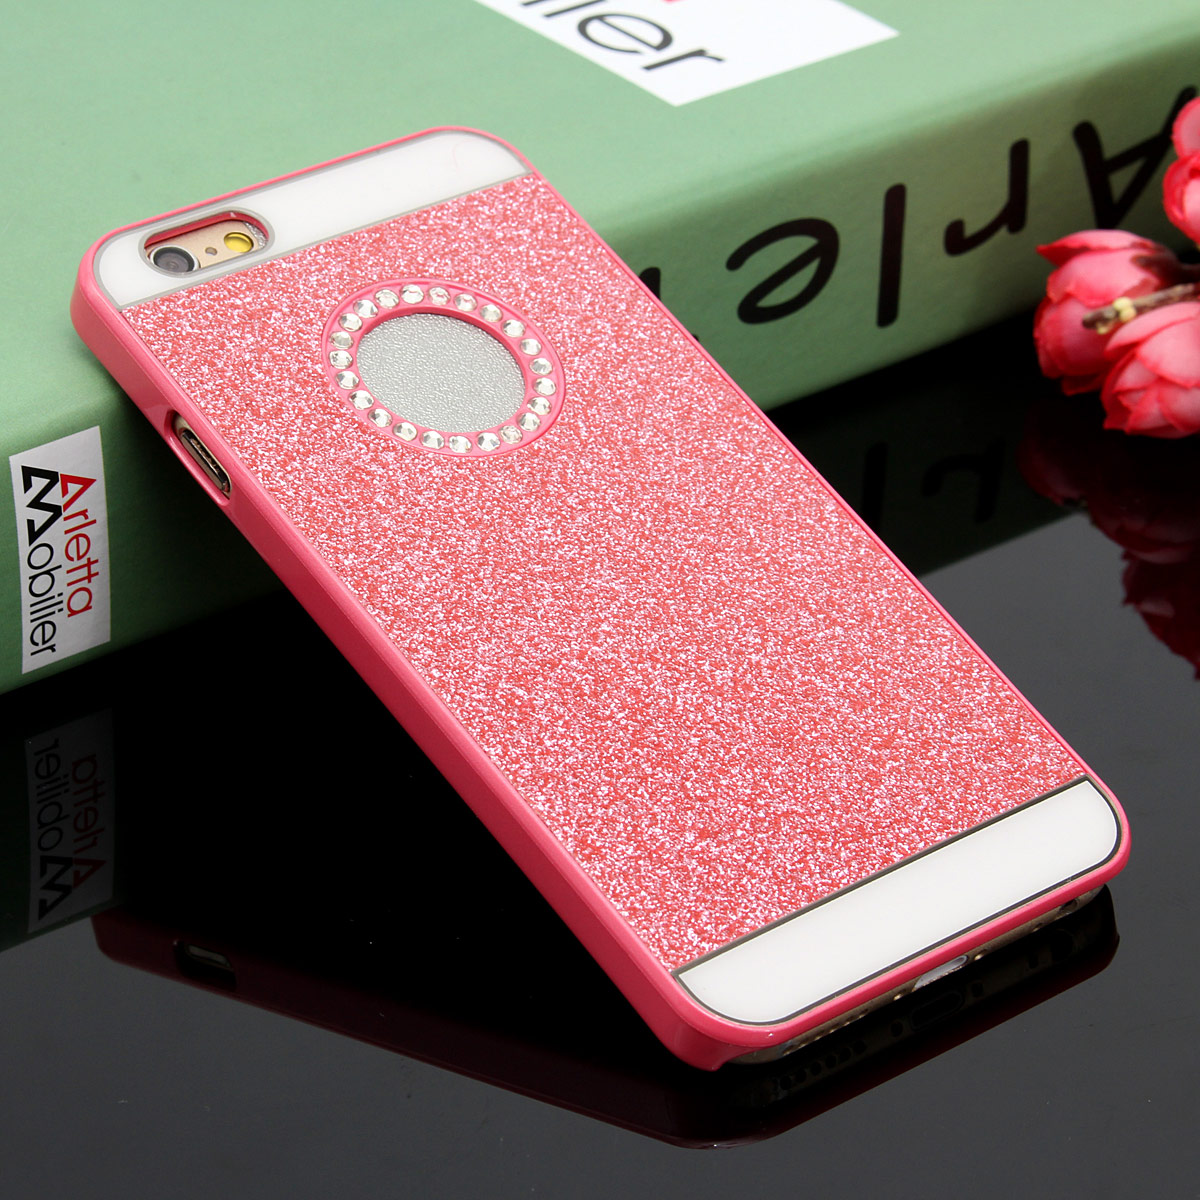 """Bling Crystal Rhinestone Diamond PC Hard Case Cover For iPhone 6 4.7""""/6 Plus 5.5"""